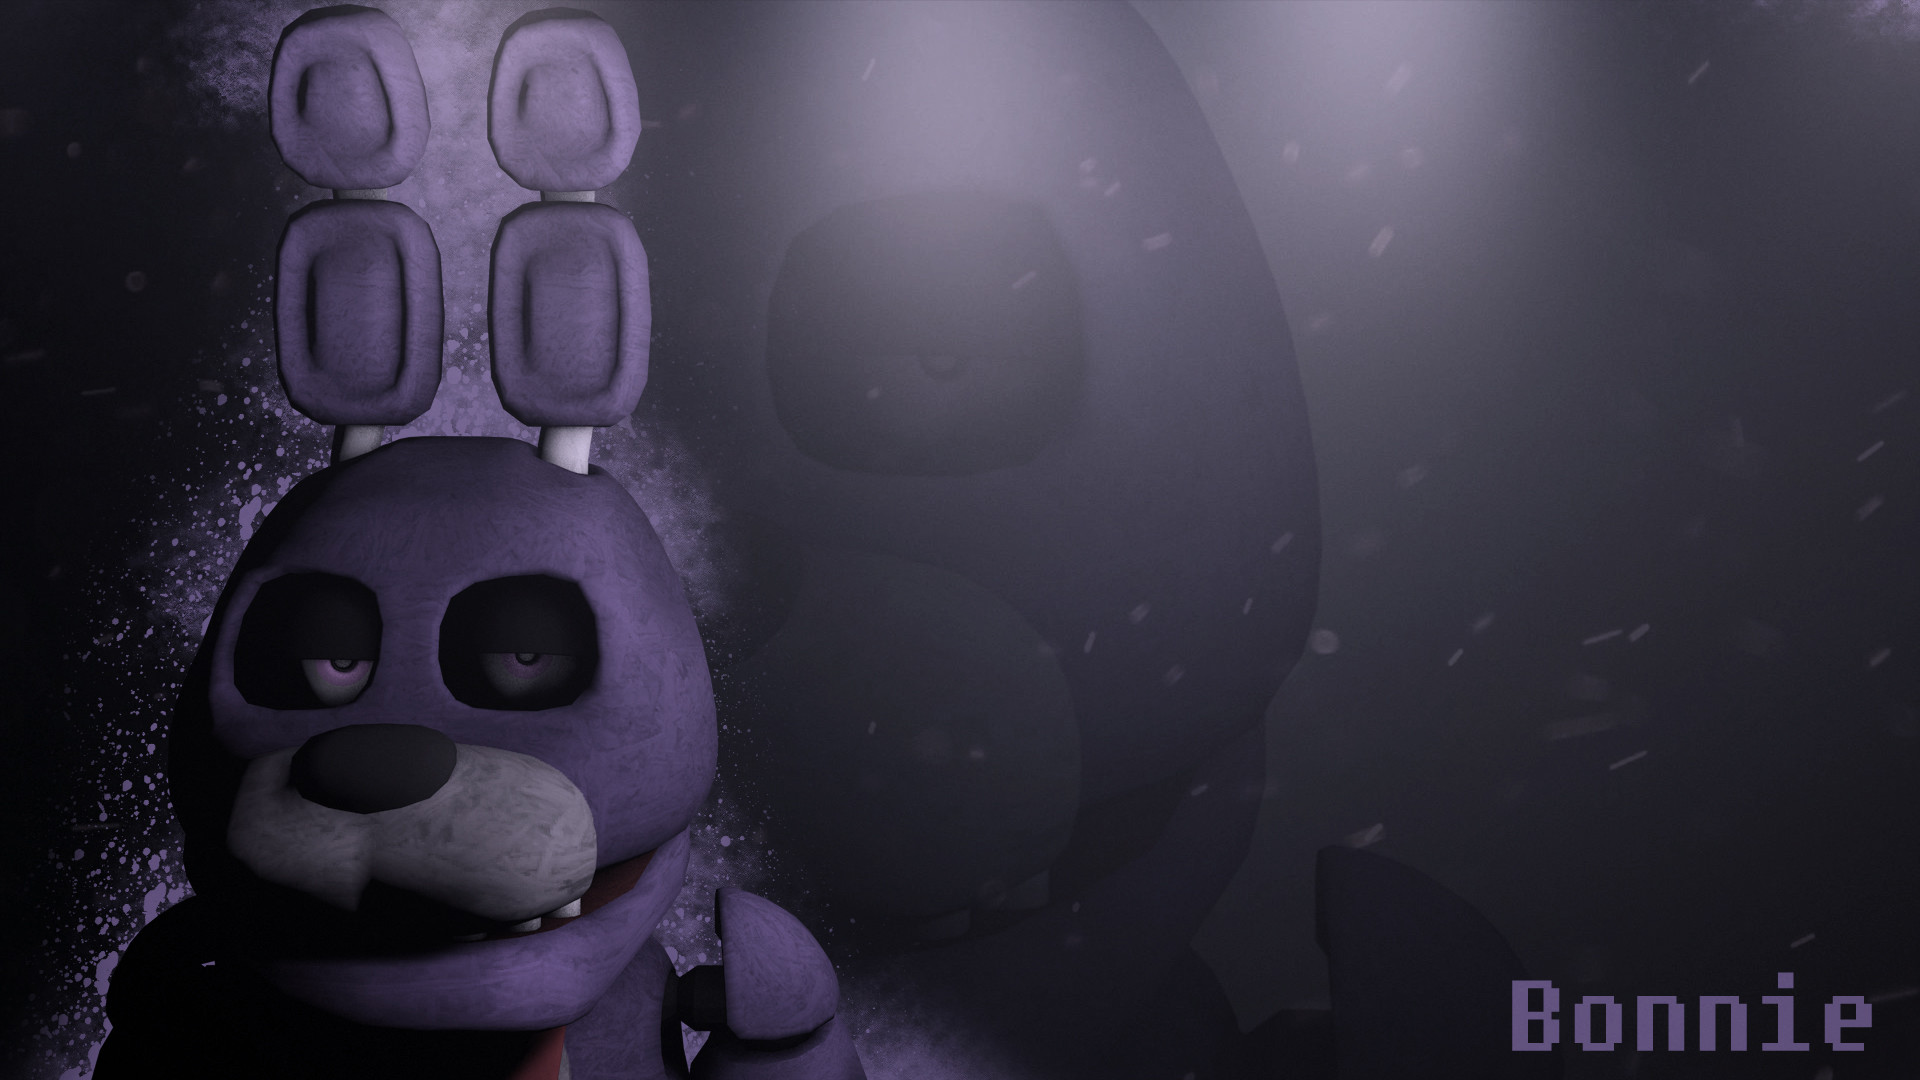 … Five Nights at Freddy's Bonnie Wallpaper DOWNLOAD by NiksonYT